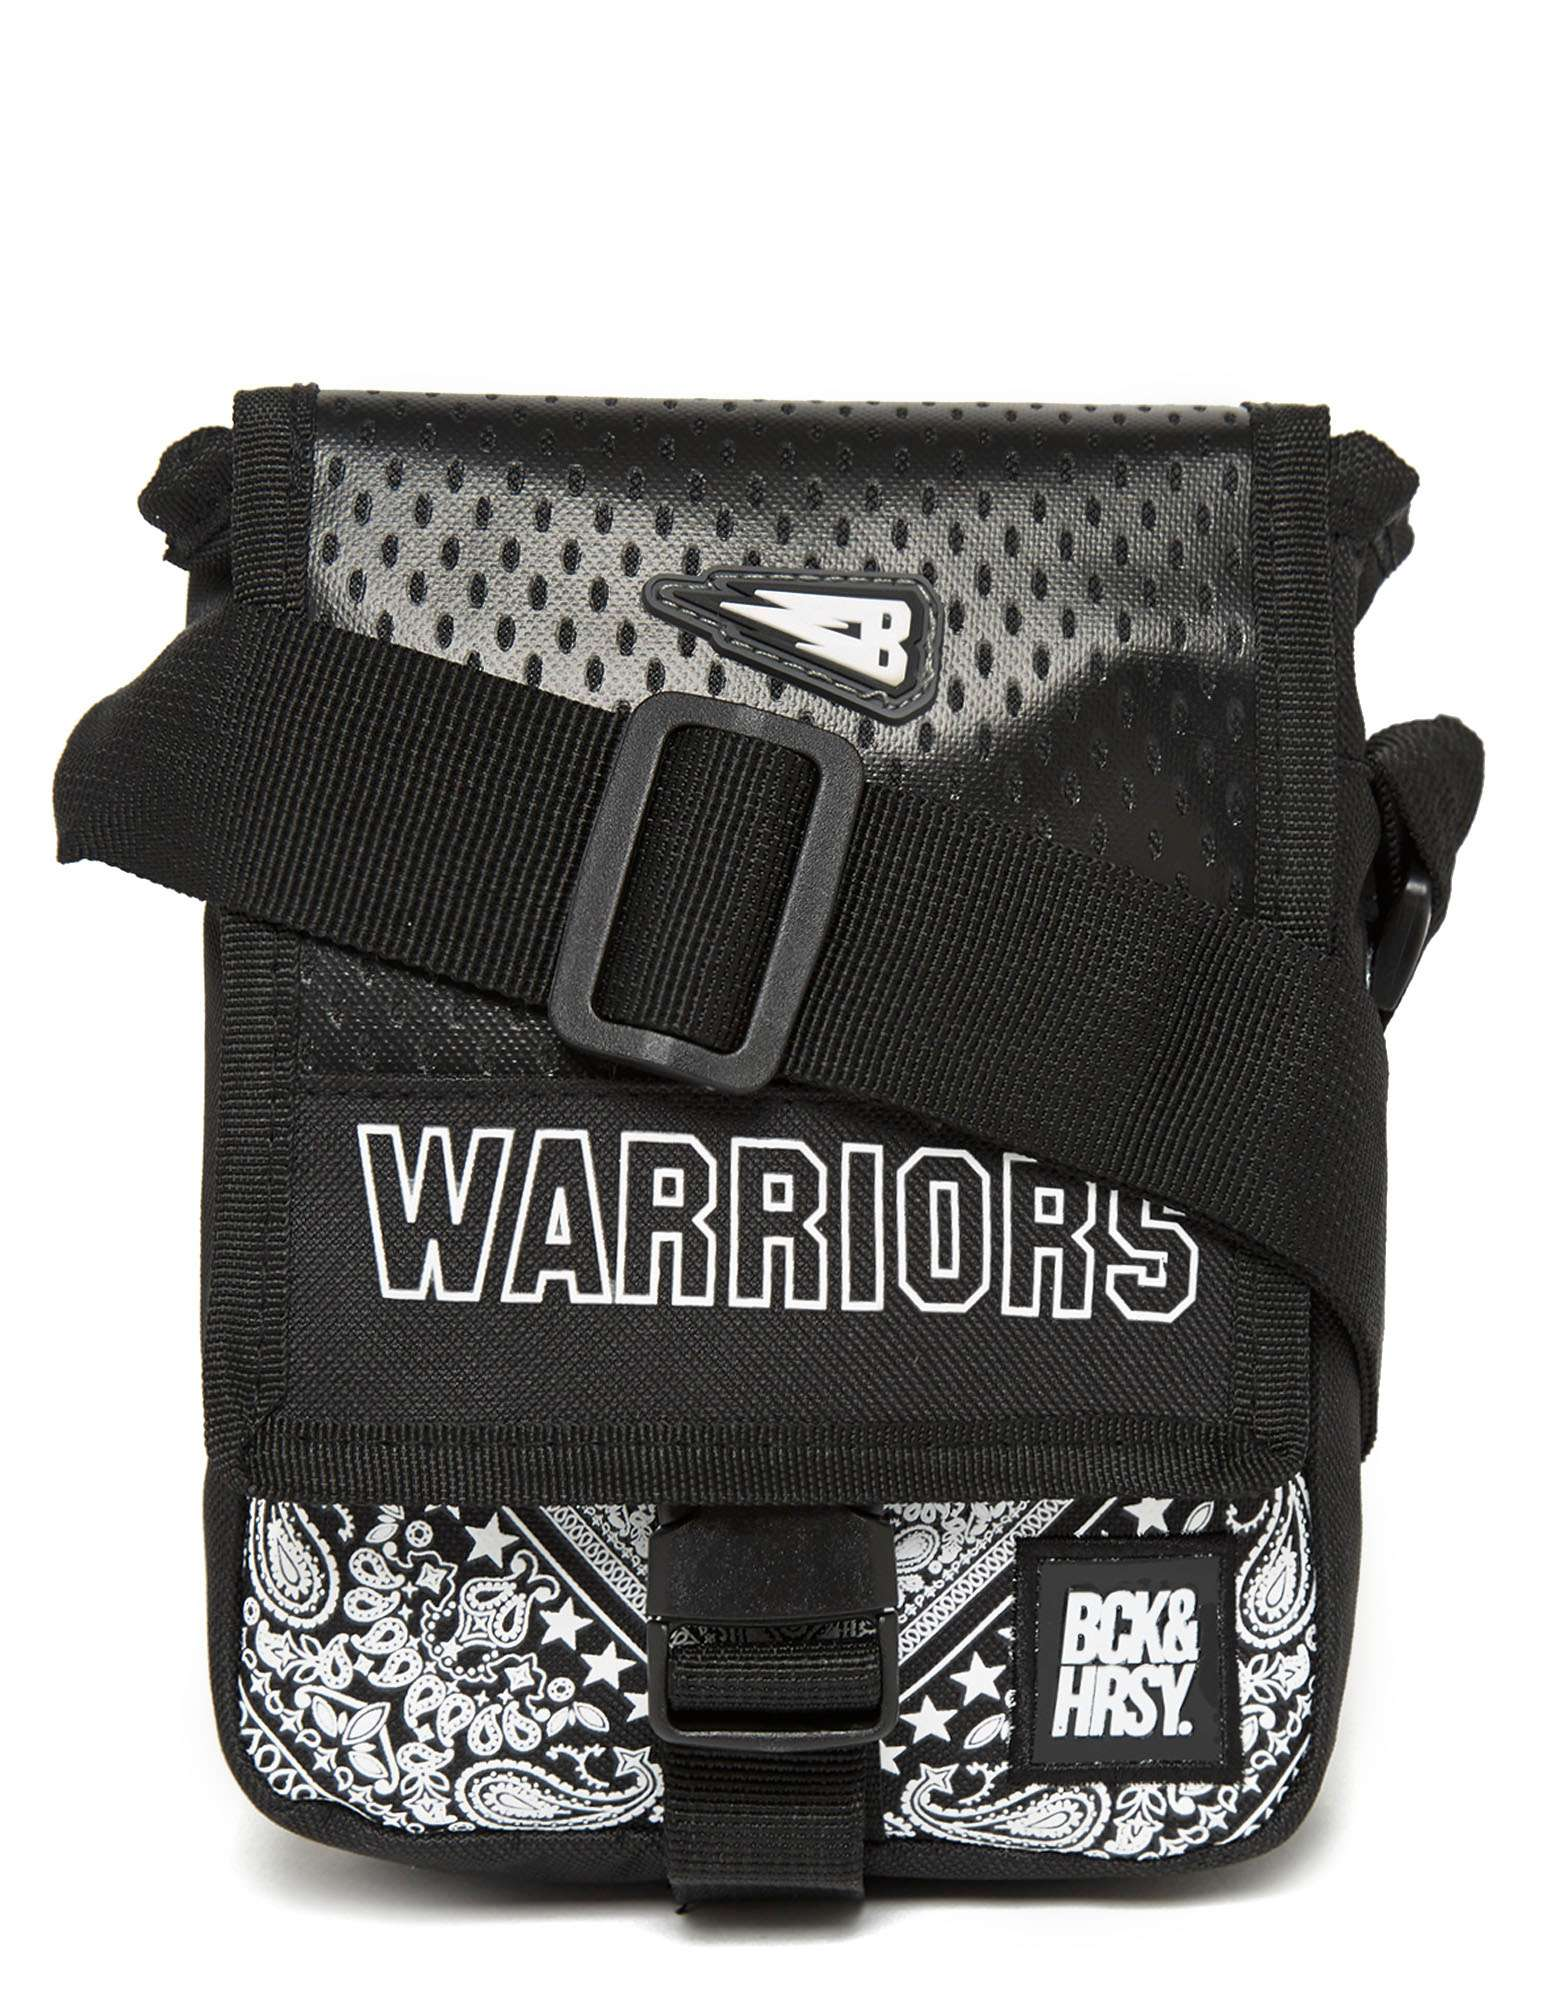 Beck and Hersey Warrior Small Items Bag